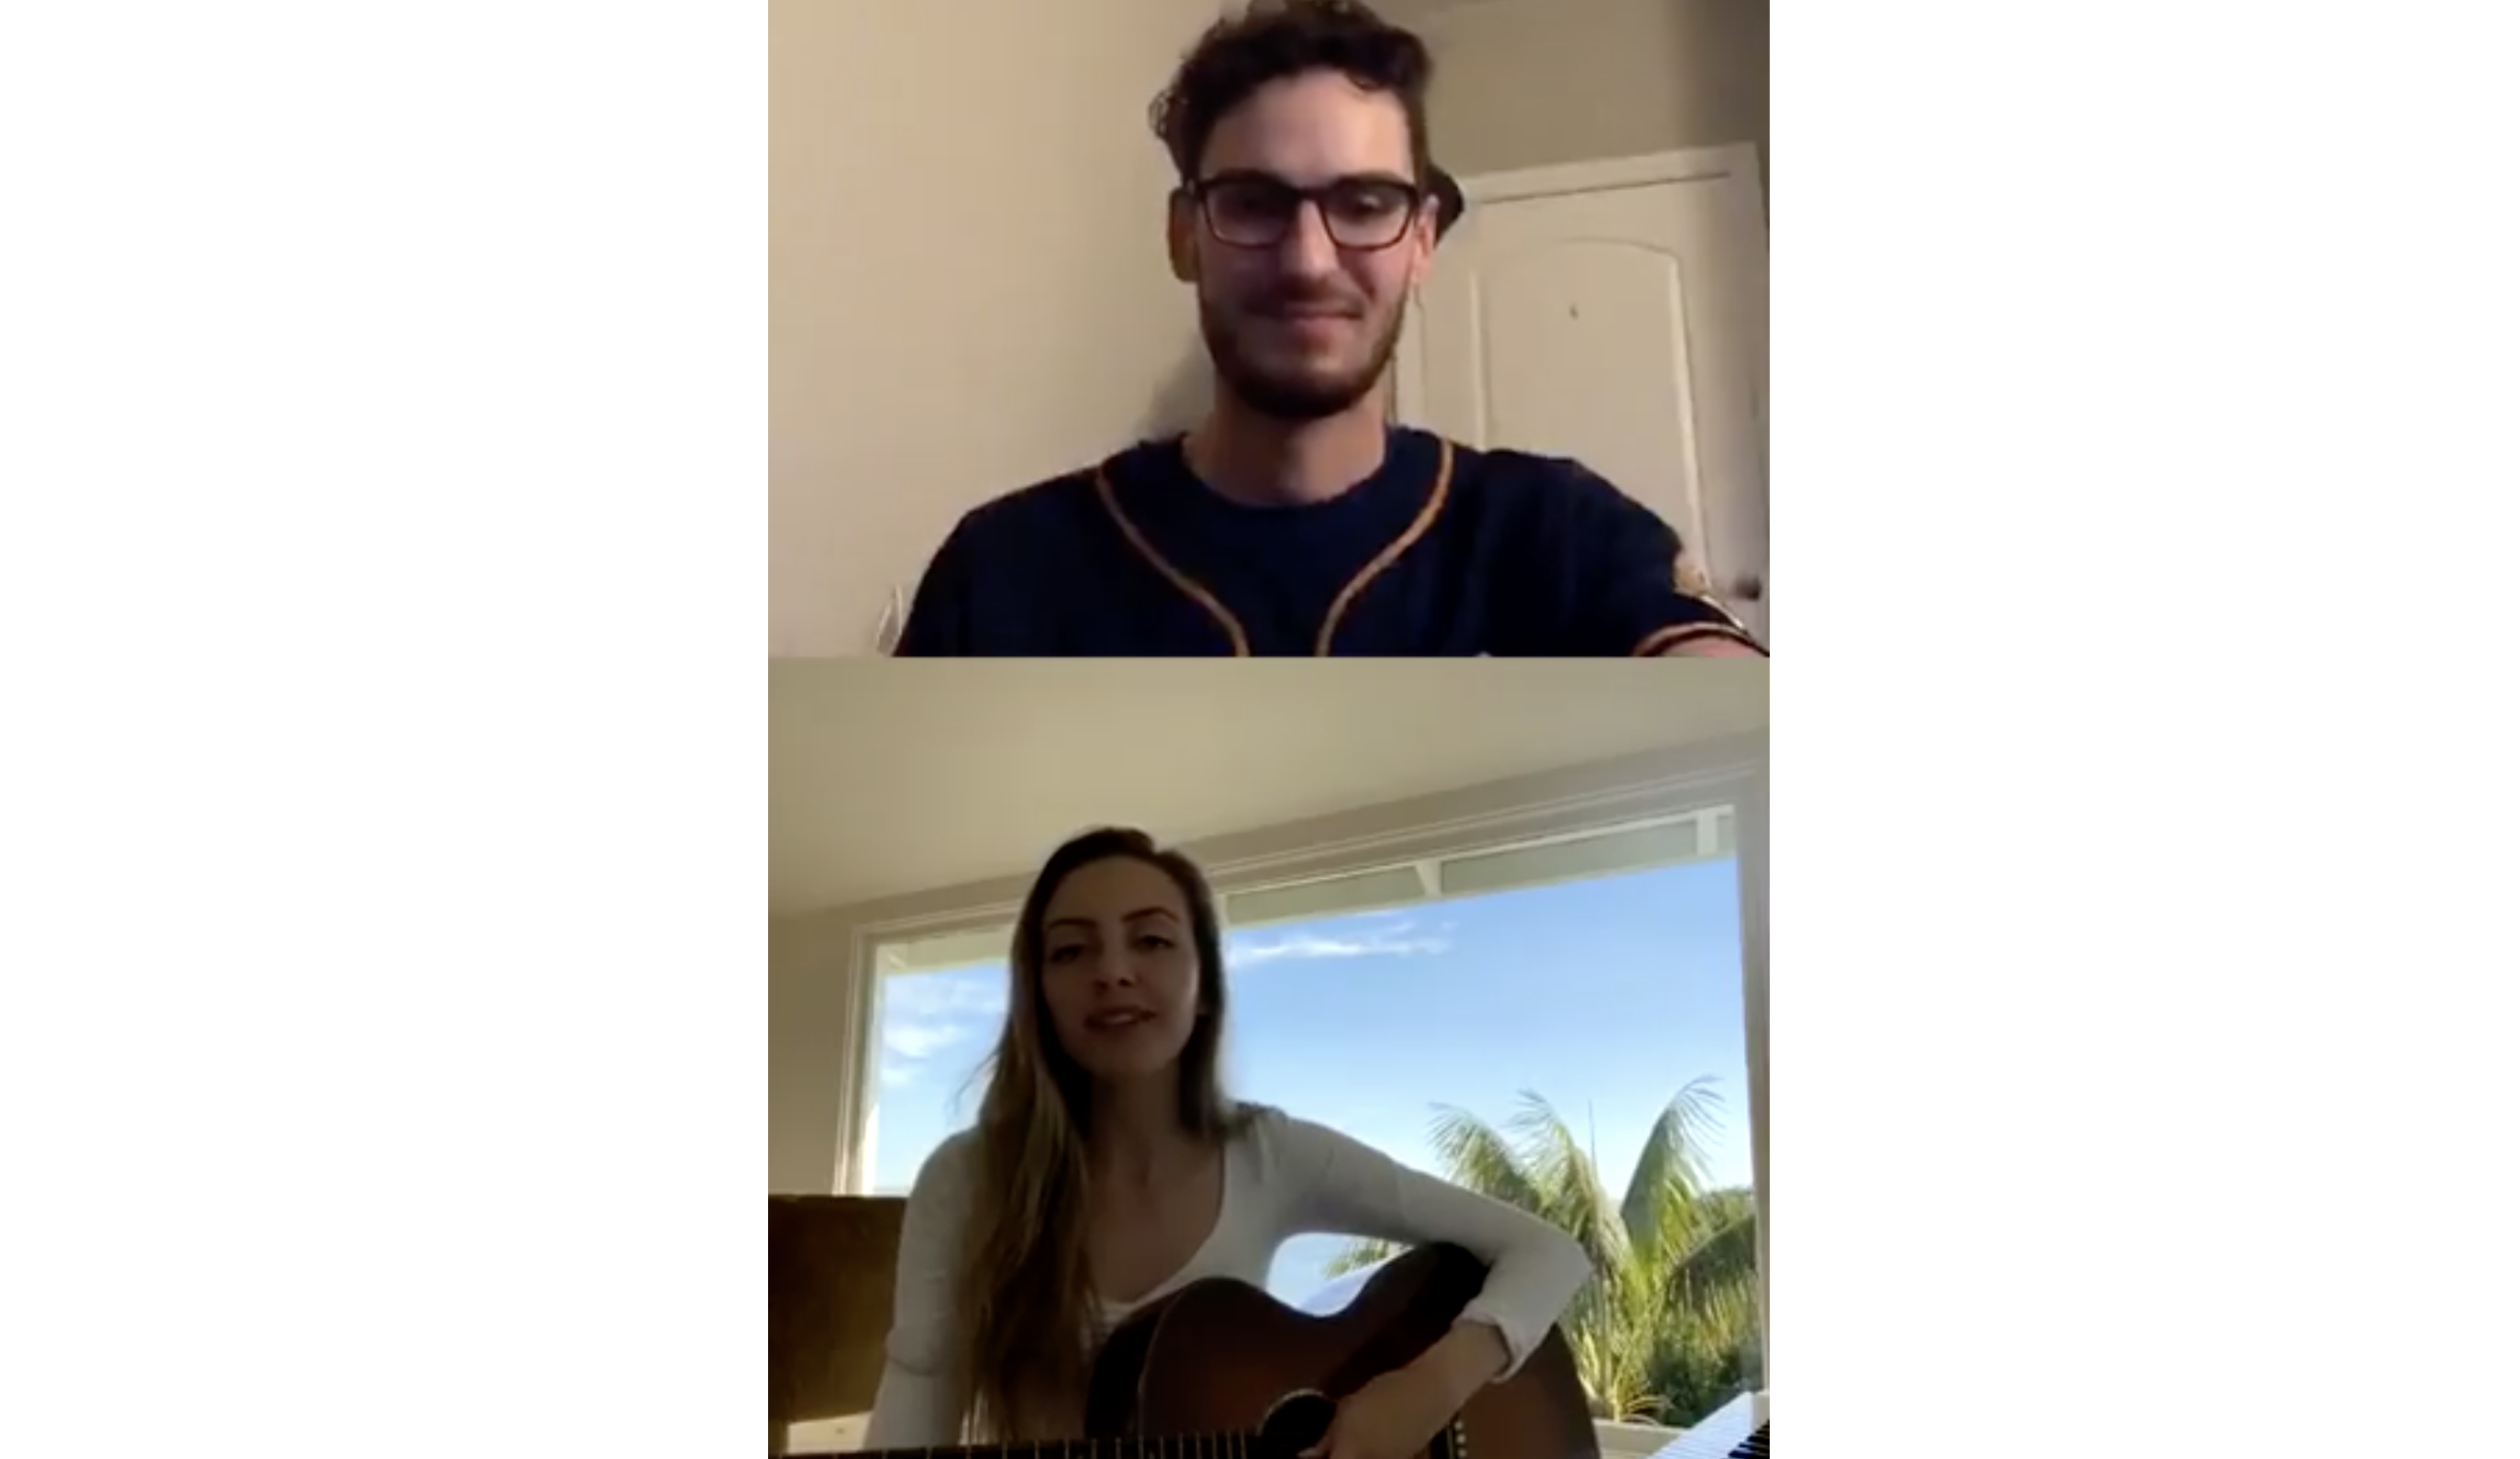 [WATCH] LIVVIA joins 93Q live on Instagram, Q+A/performance